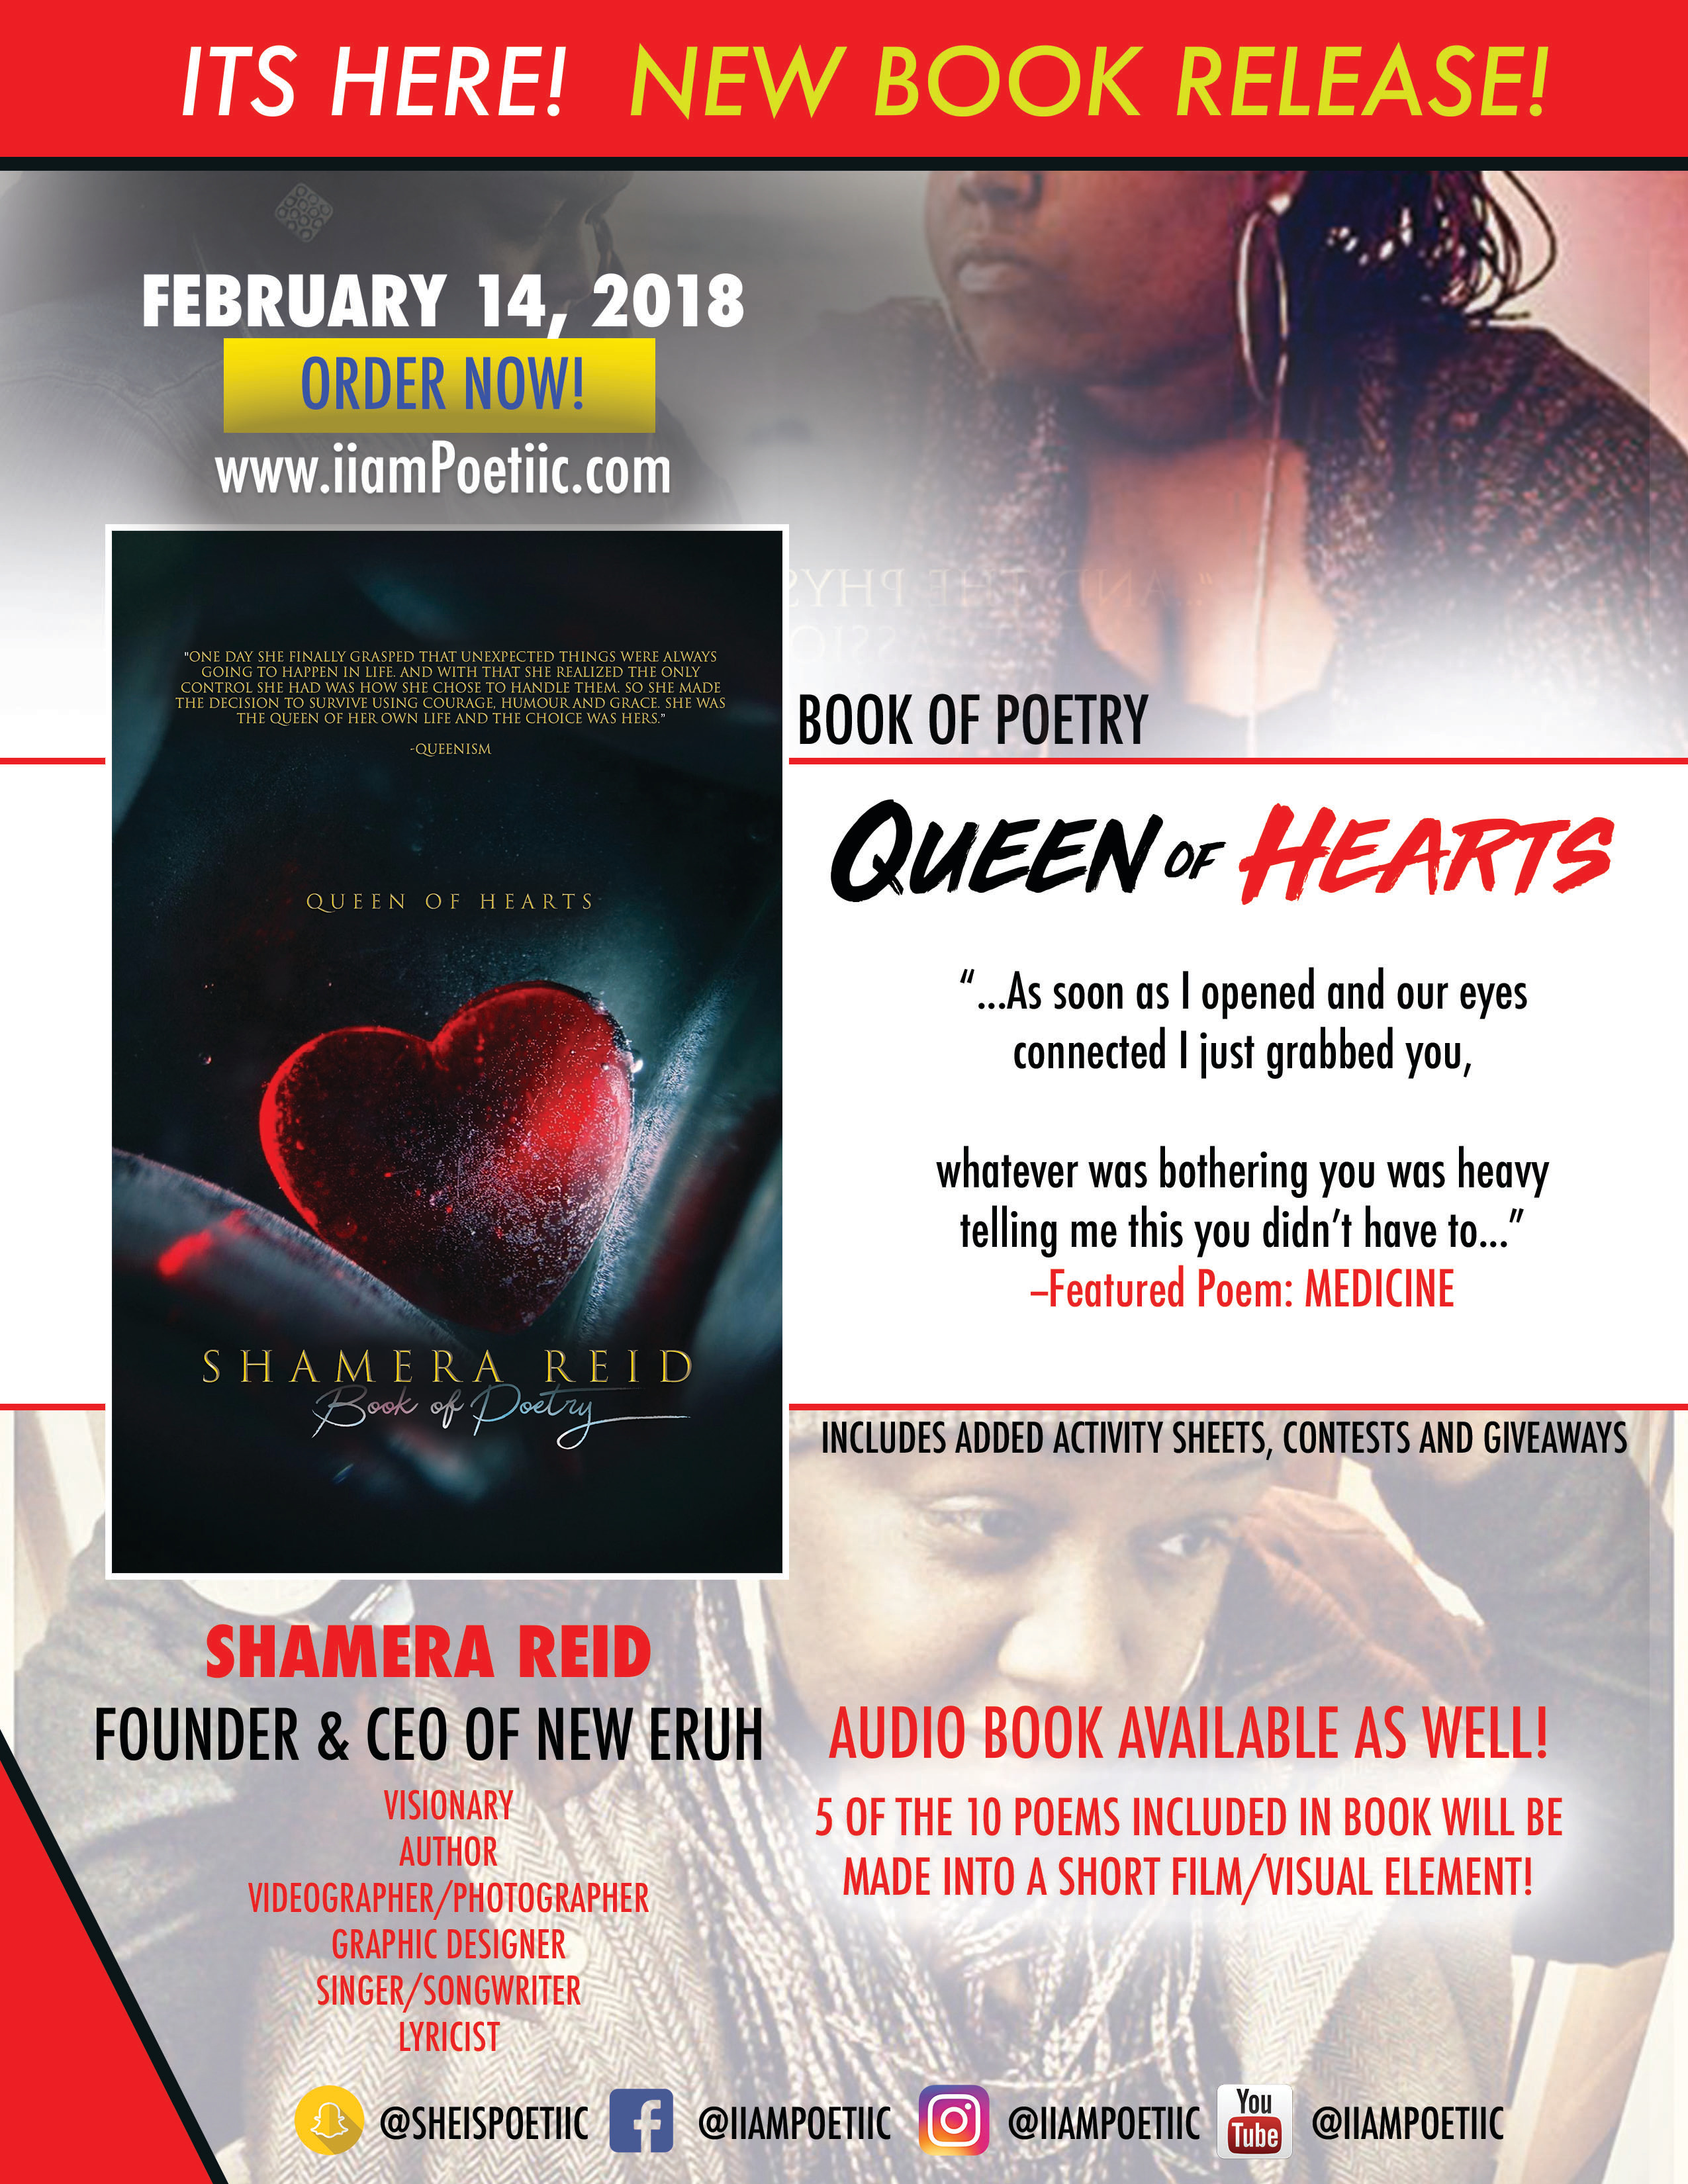 QUEEN OF HEARTS order NOW